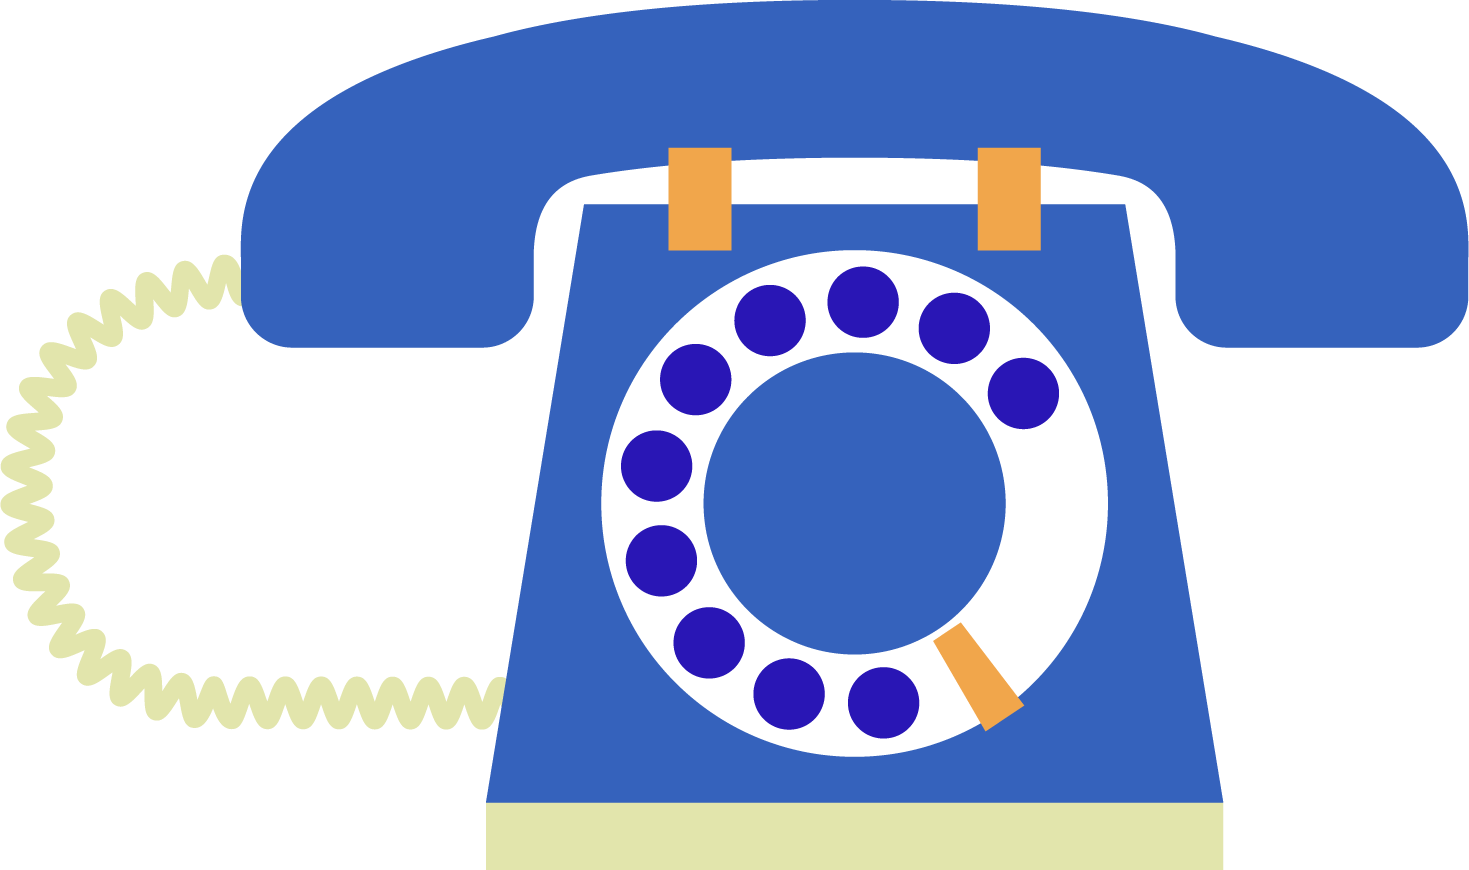 Clipart phone telephony. Telephone png transparent free